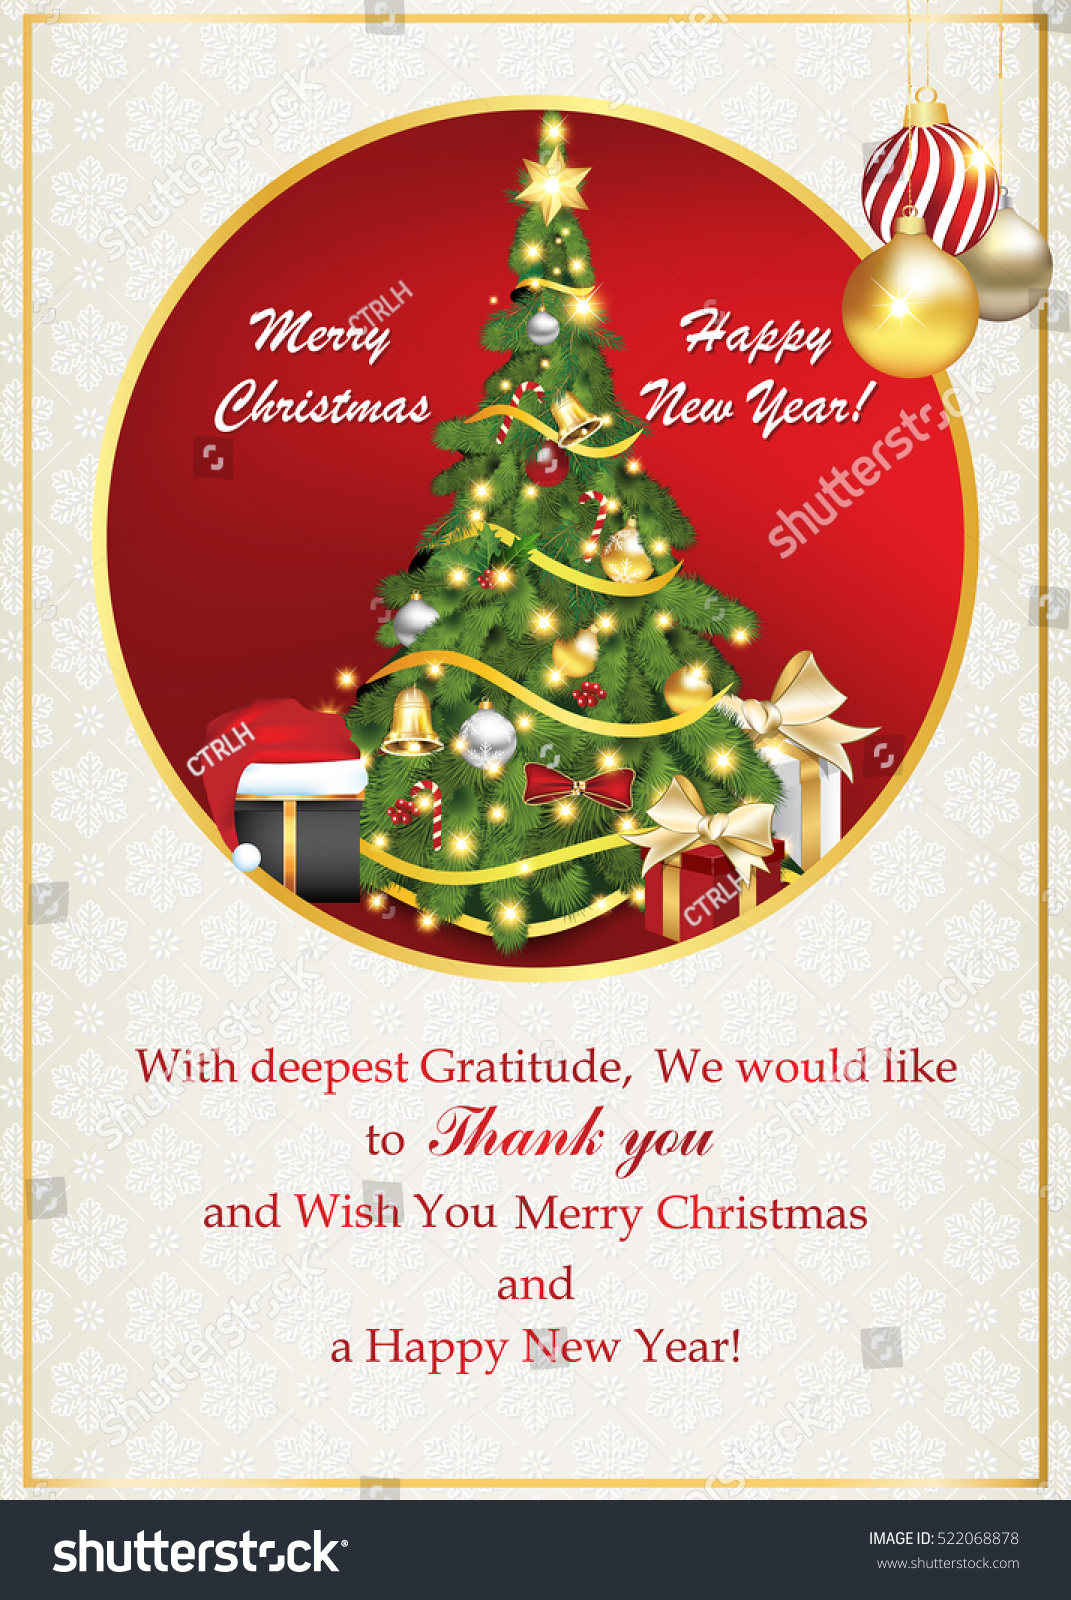 Thank You Business Greeting Card Christmas Stock Illustration ...